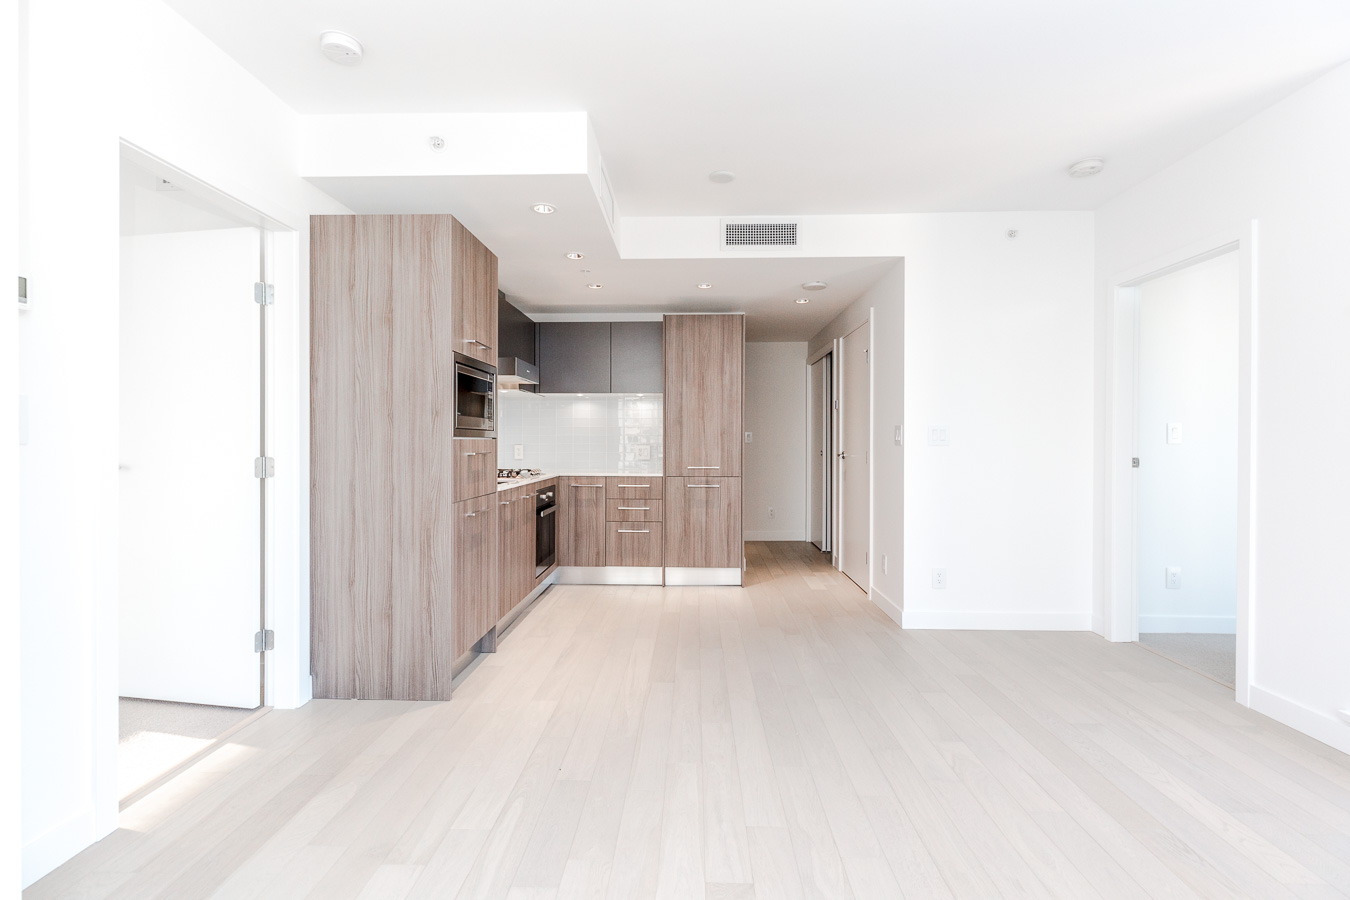 Kitchen and dining area at brand new Vancouver condo rental managed by Birds Nest Properties.